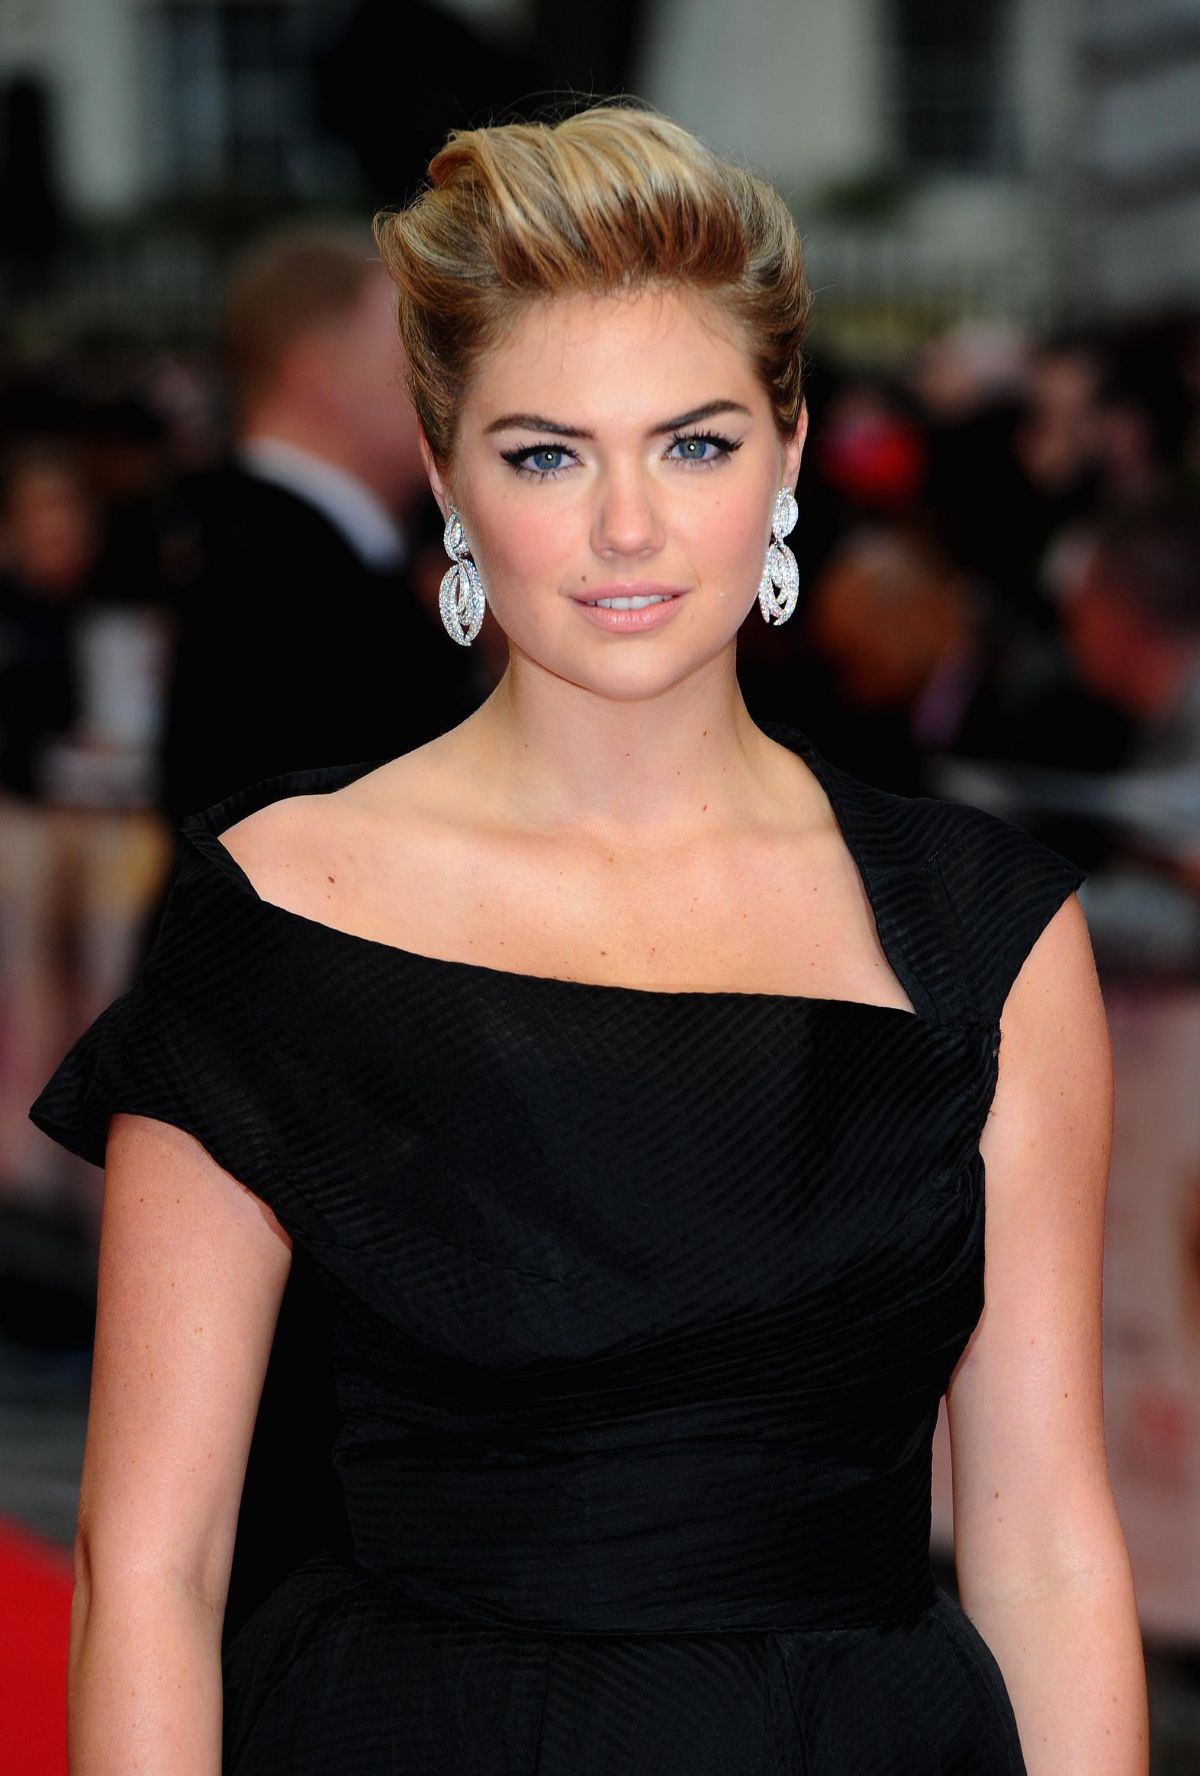 Kate Upton At The Other Woman Premiere In London Hawtcelebs